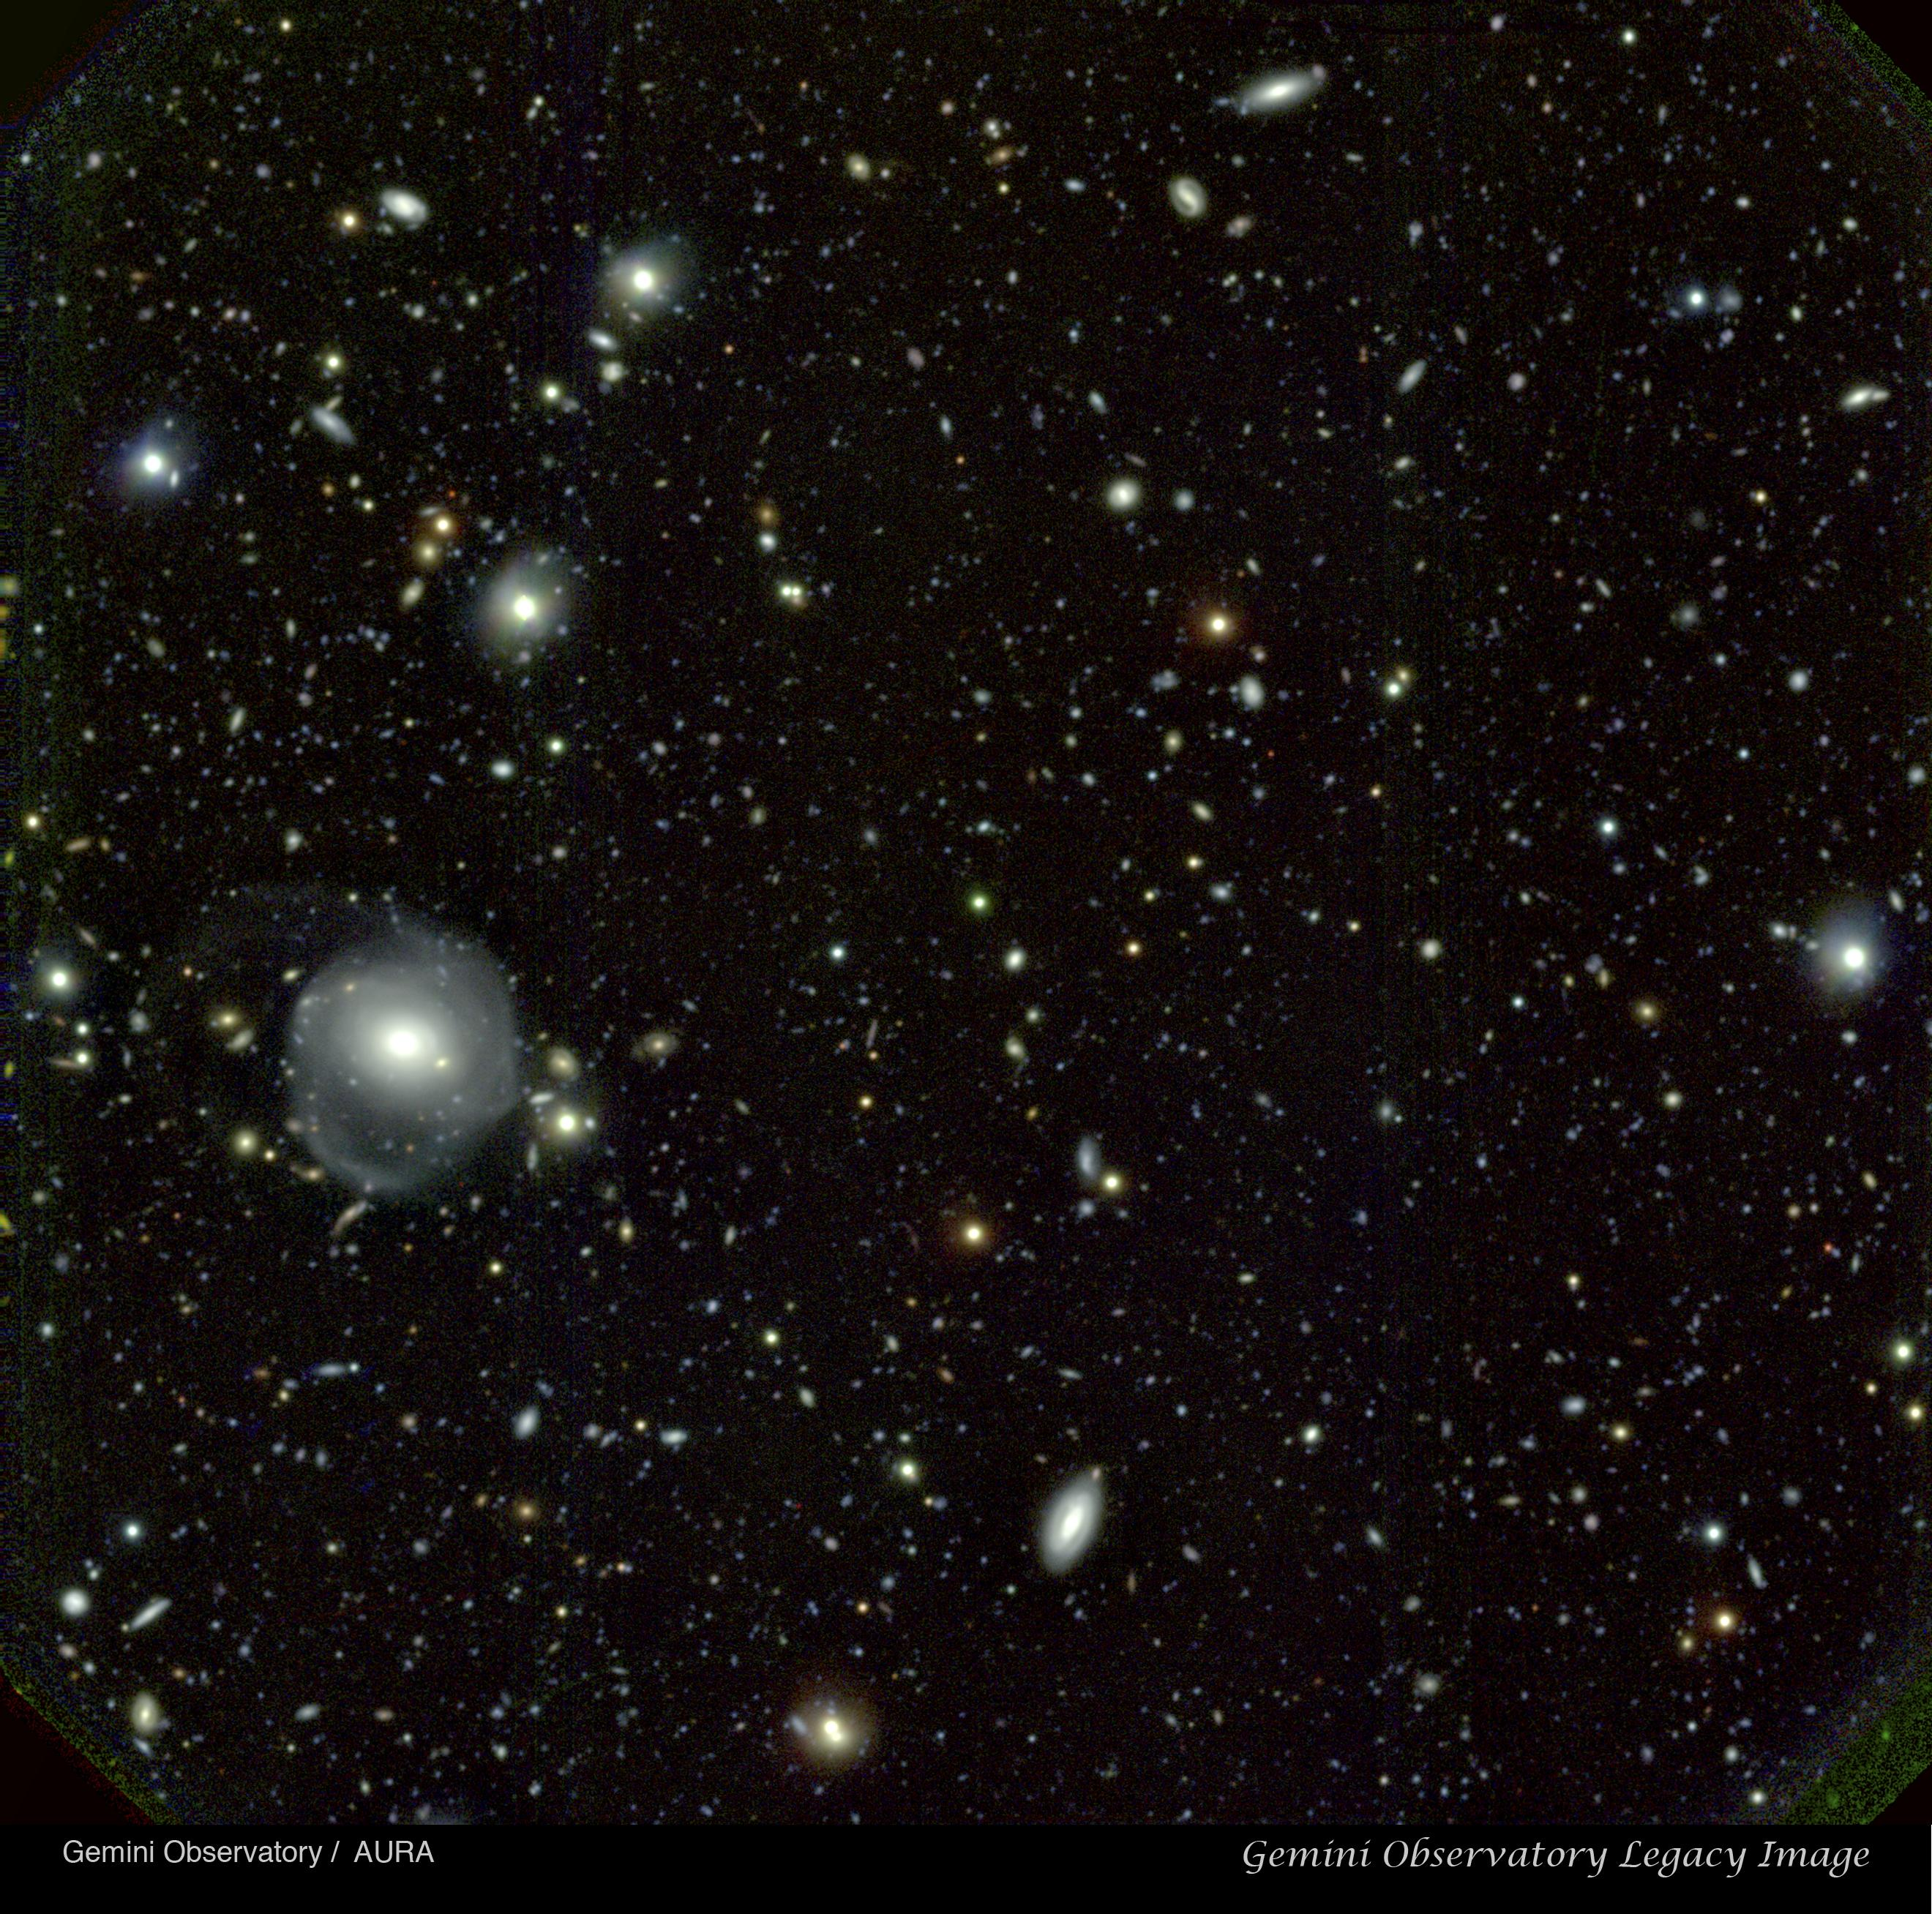 Quasar & Deep Galaxy Field